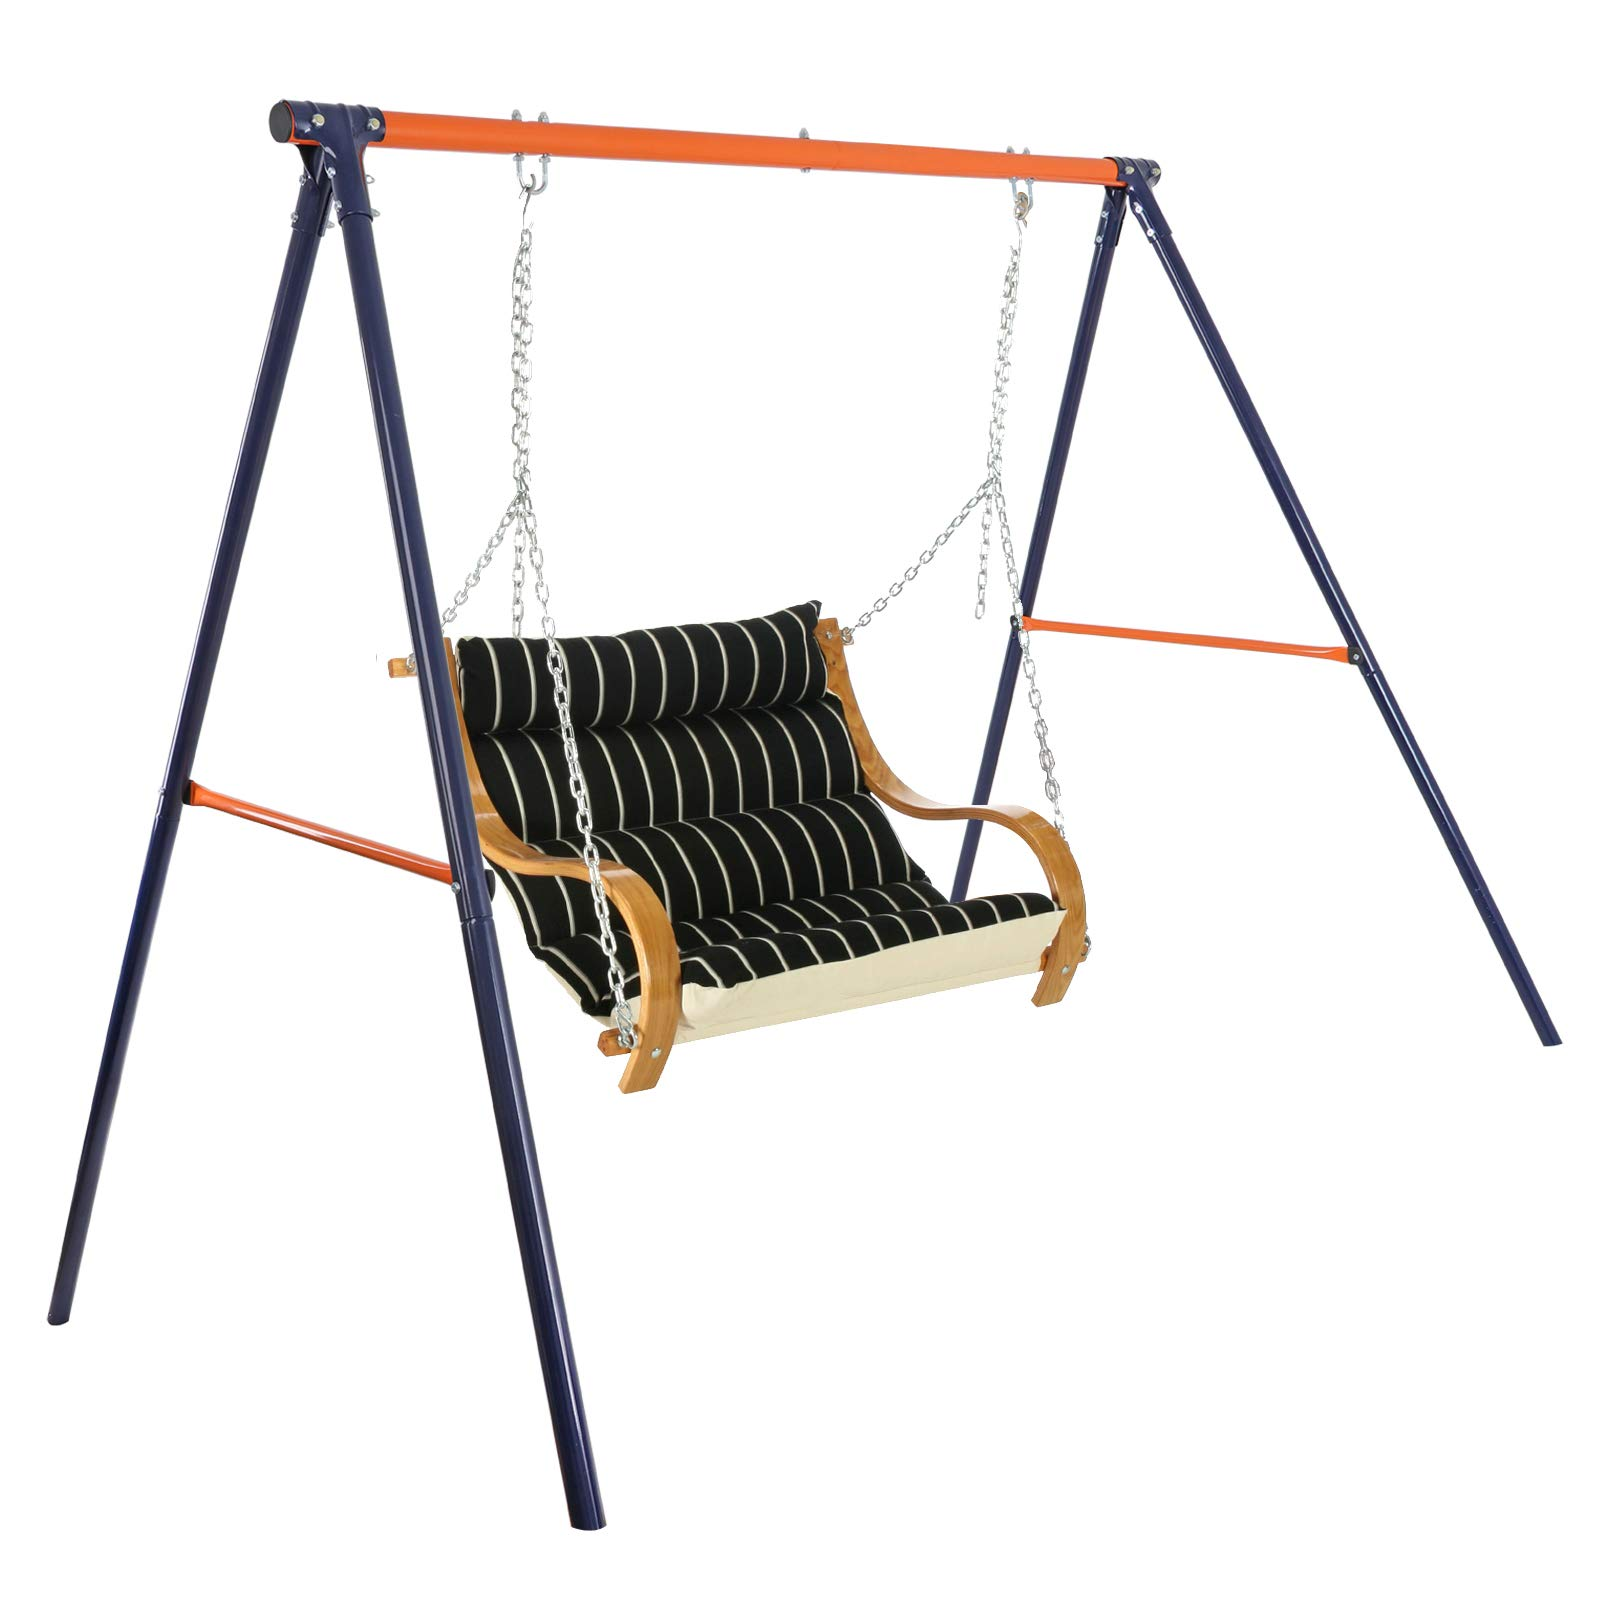 LEMY Large Heavy Duty All-Steel Swing Frame 70.9'' Height 86.6'' Length 220 LB Weight Capacity Metal A-Frame Swing Stand by LEMY (Image #7)